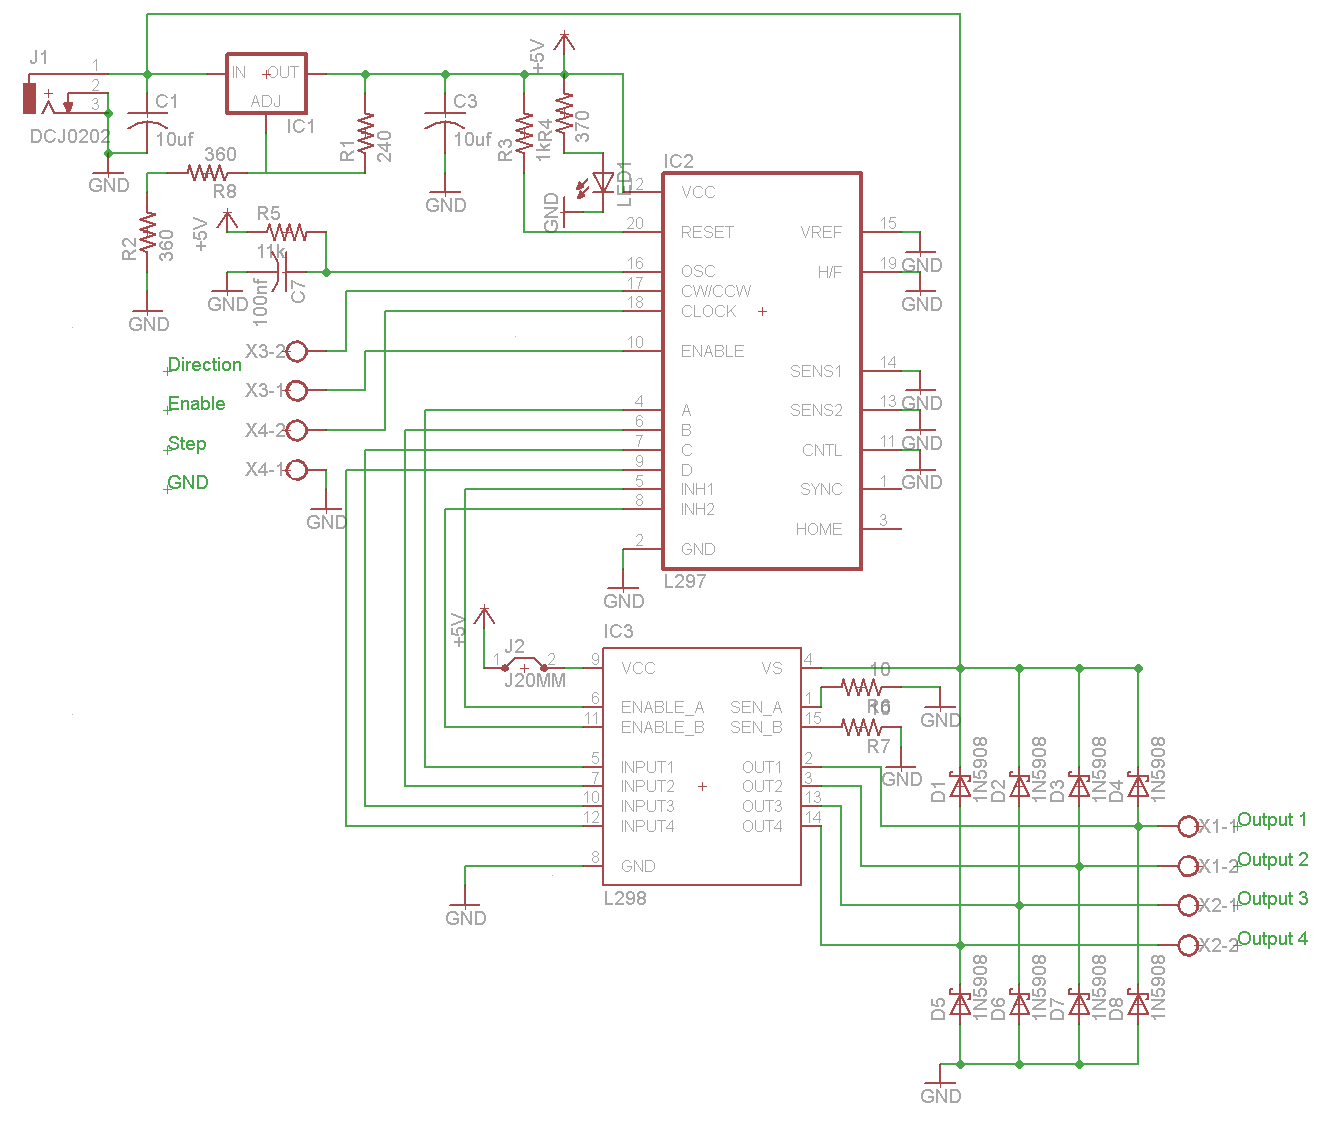 Strange Diy Stepper Controller Schematic Pyroelectro News Projects Wiring Cloud Onicaalyptbenolwigegmohammedshrineorg